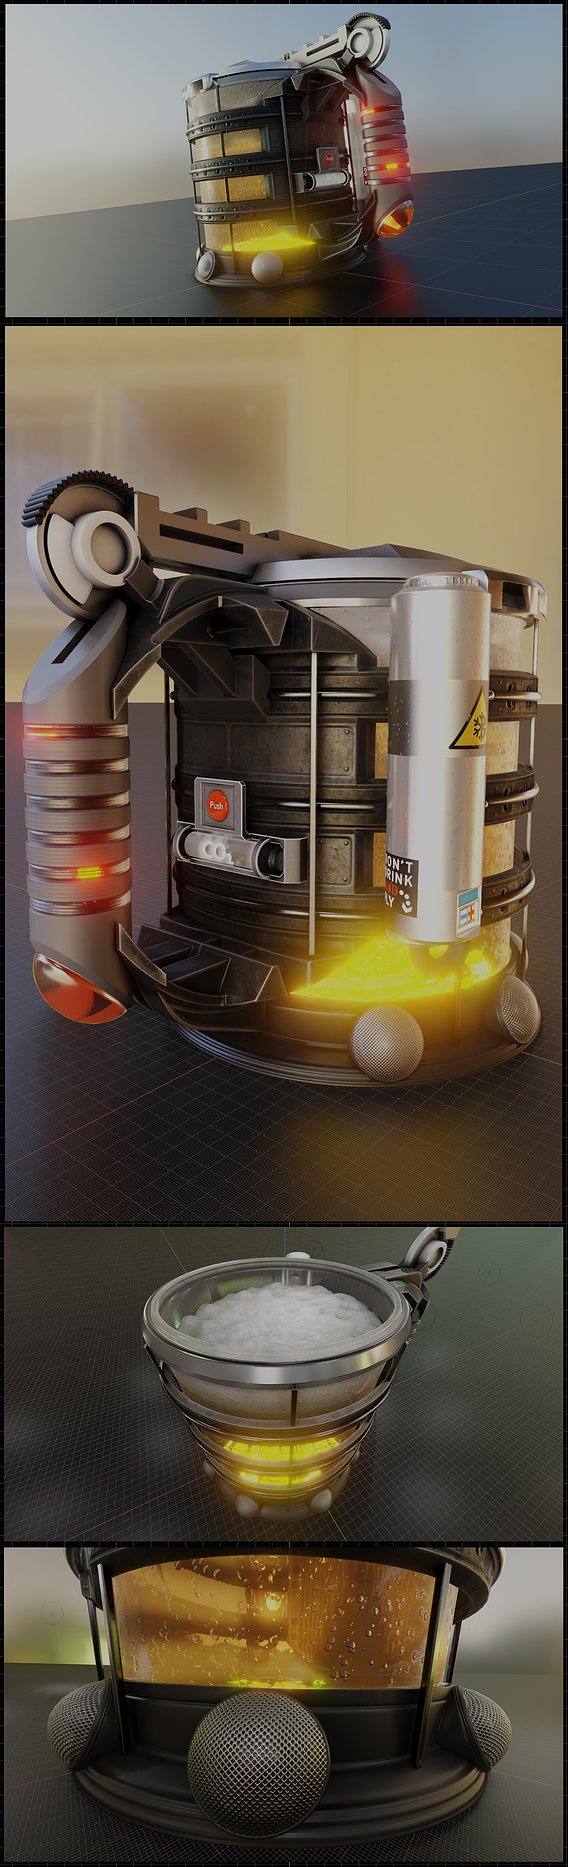 The Infinite Beer Mug From The Future (Wip-76)